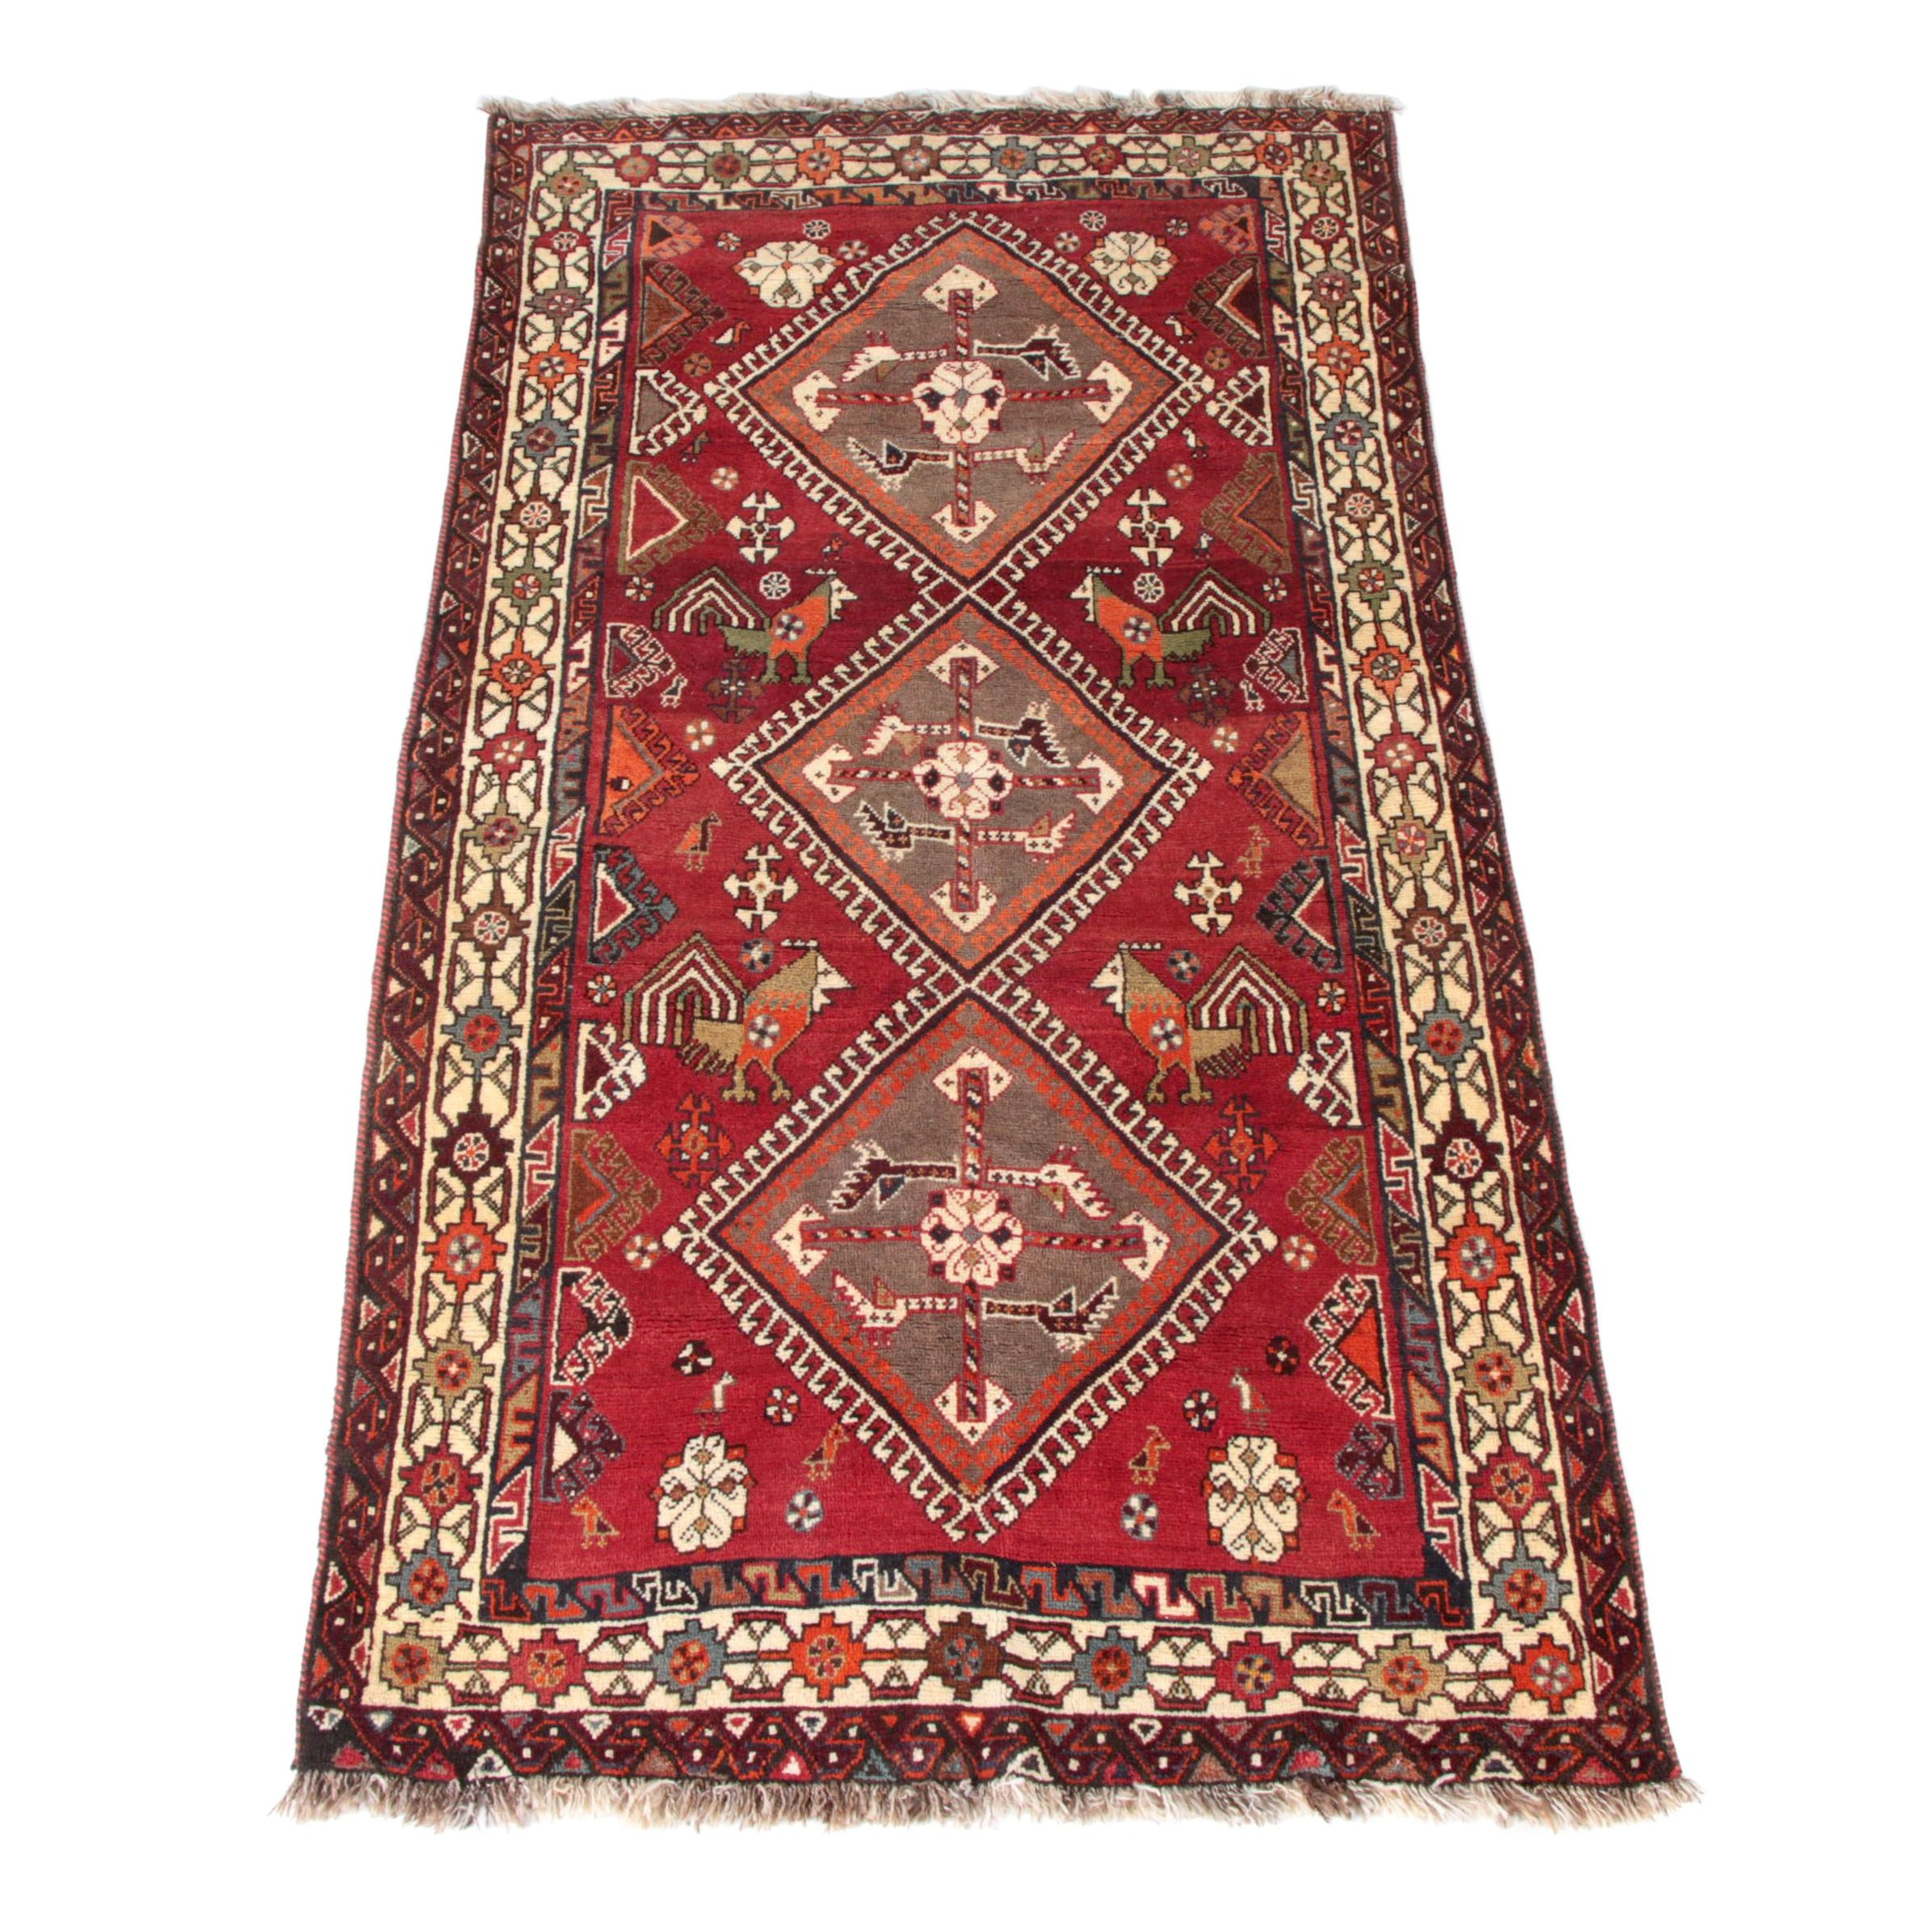 Hand-Knotted Qashqai Tribal Wool Area Rug